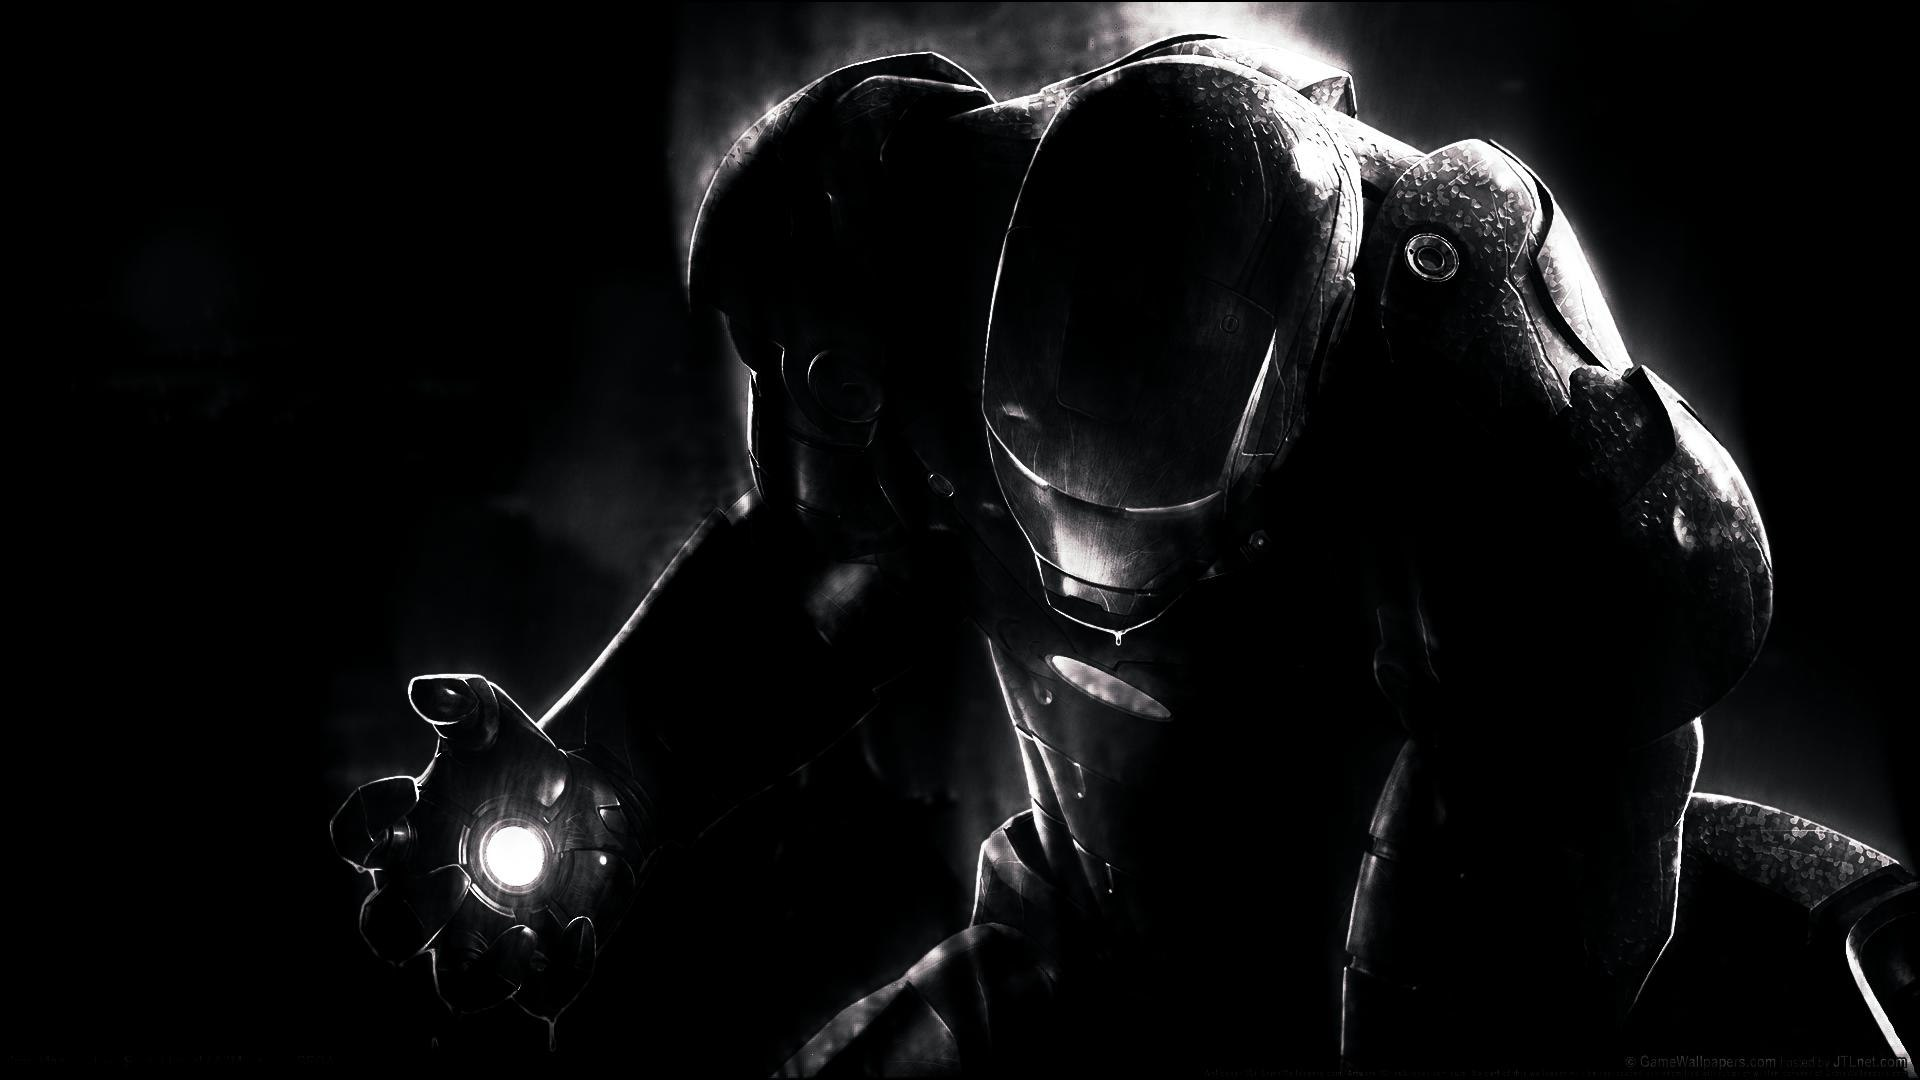 Iron Man wallpaper  Download free High Resolution